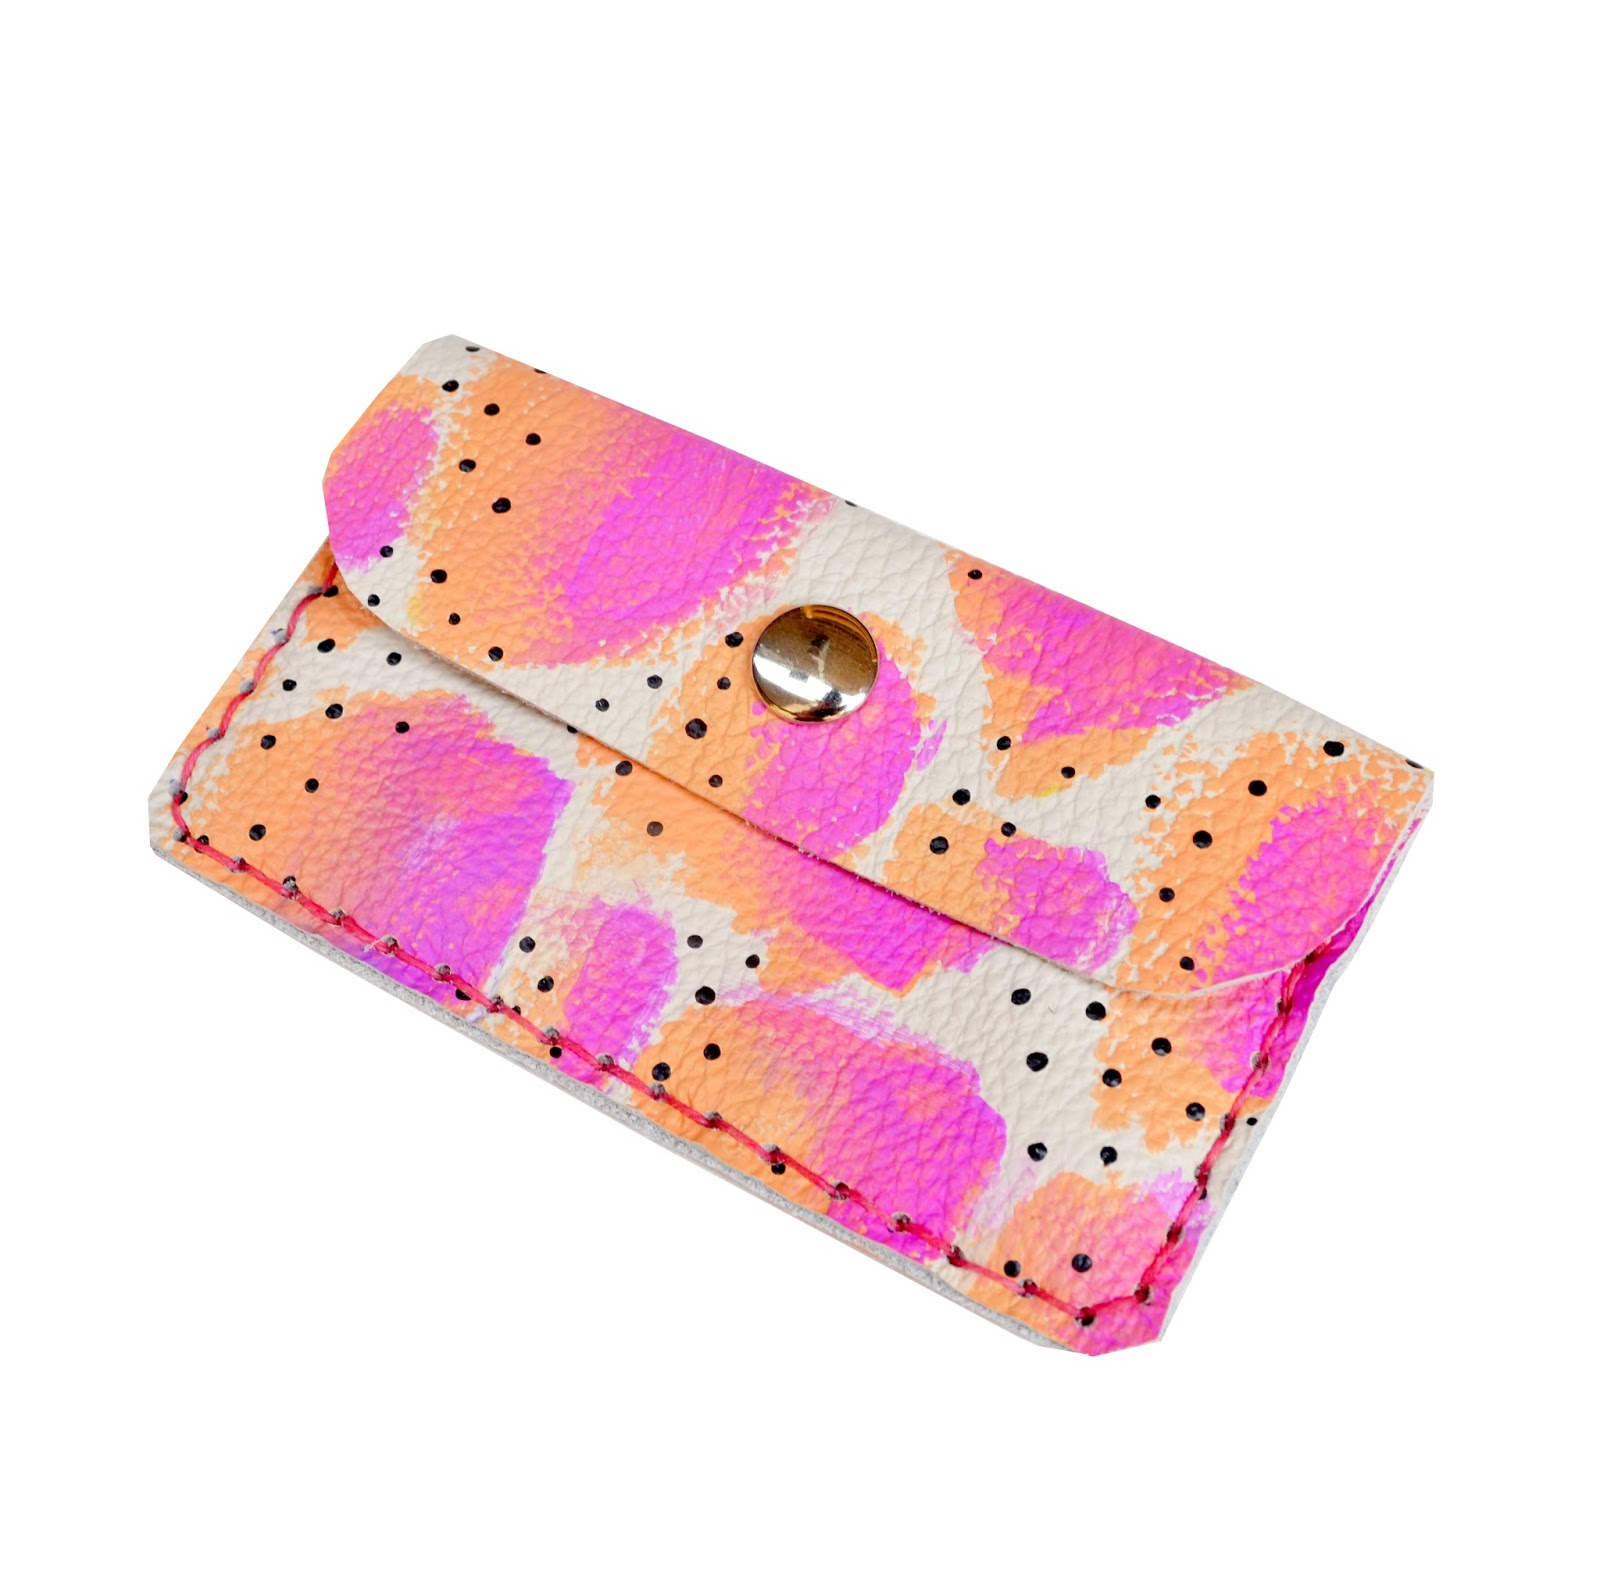 Boo and Boo Factory New Handmade Colorful Painted Leather Wallets